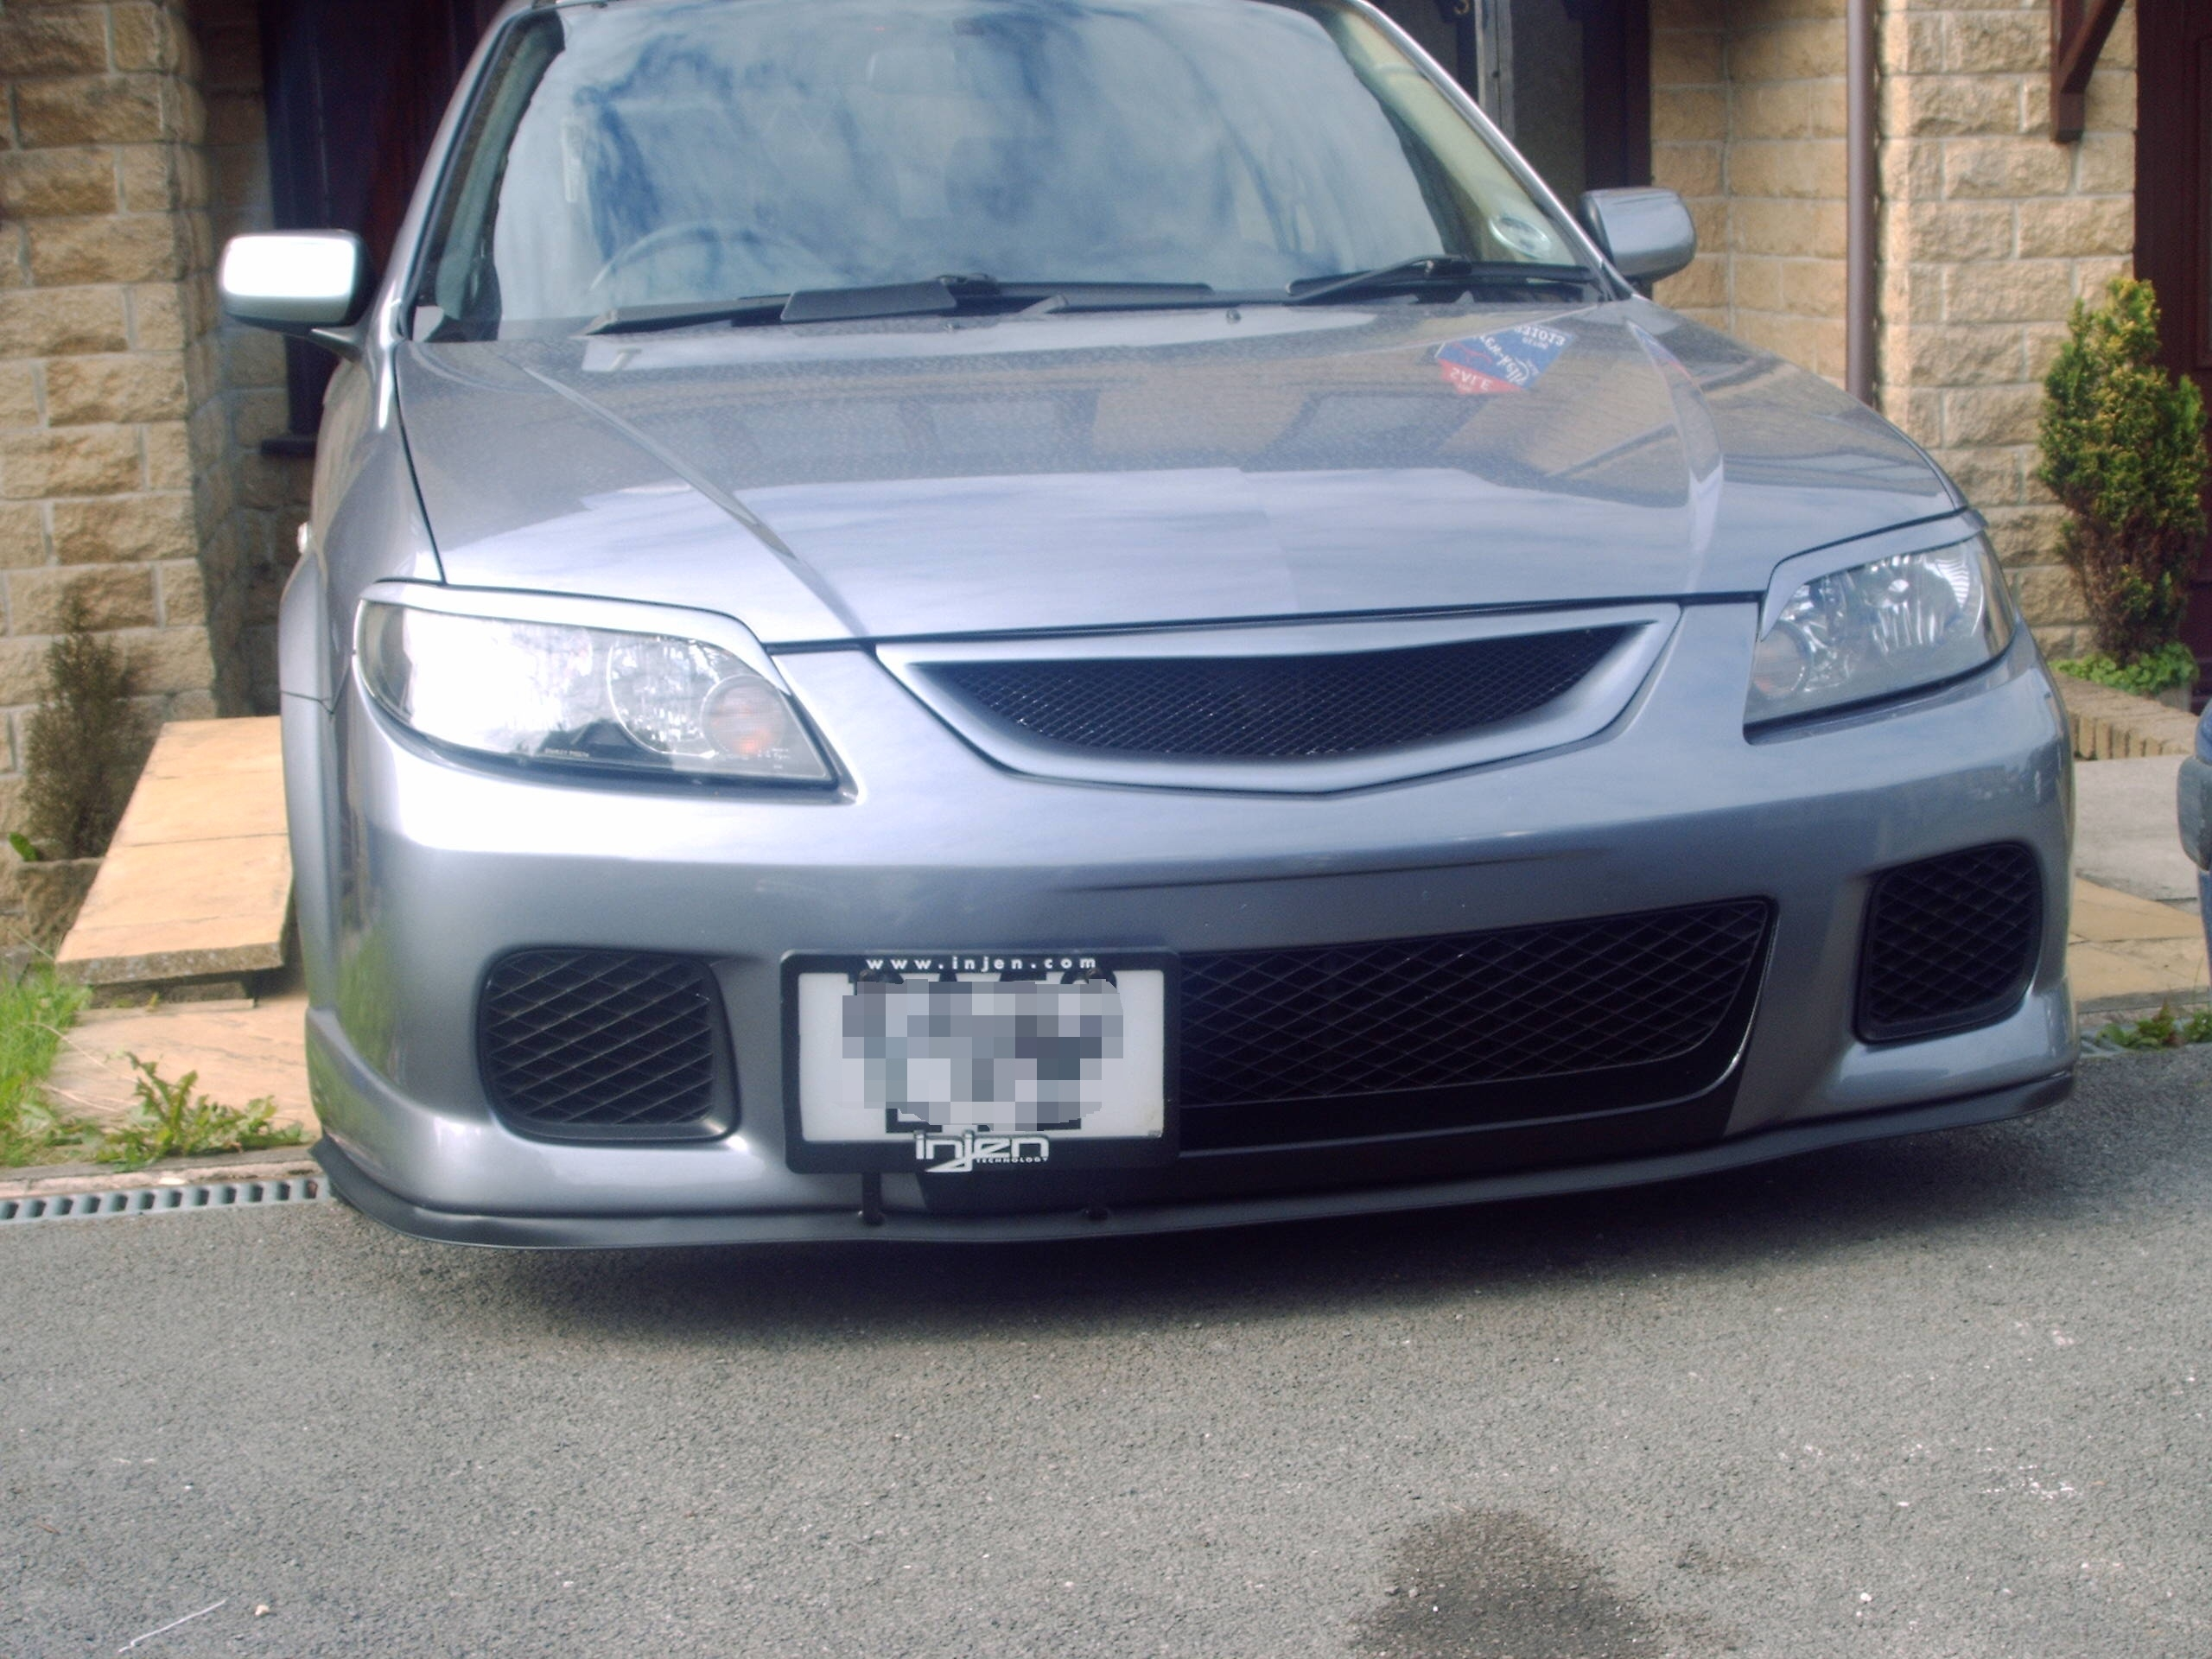 ERRNEE 2003 Mazda Protege5 Specs, Photos, Modification Info